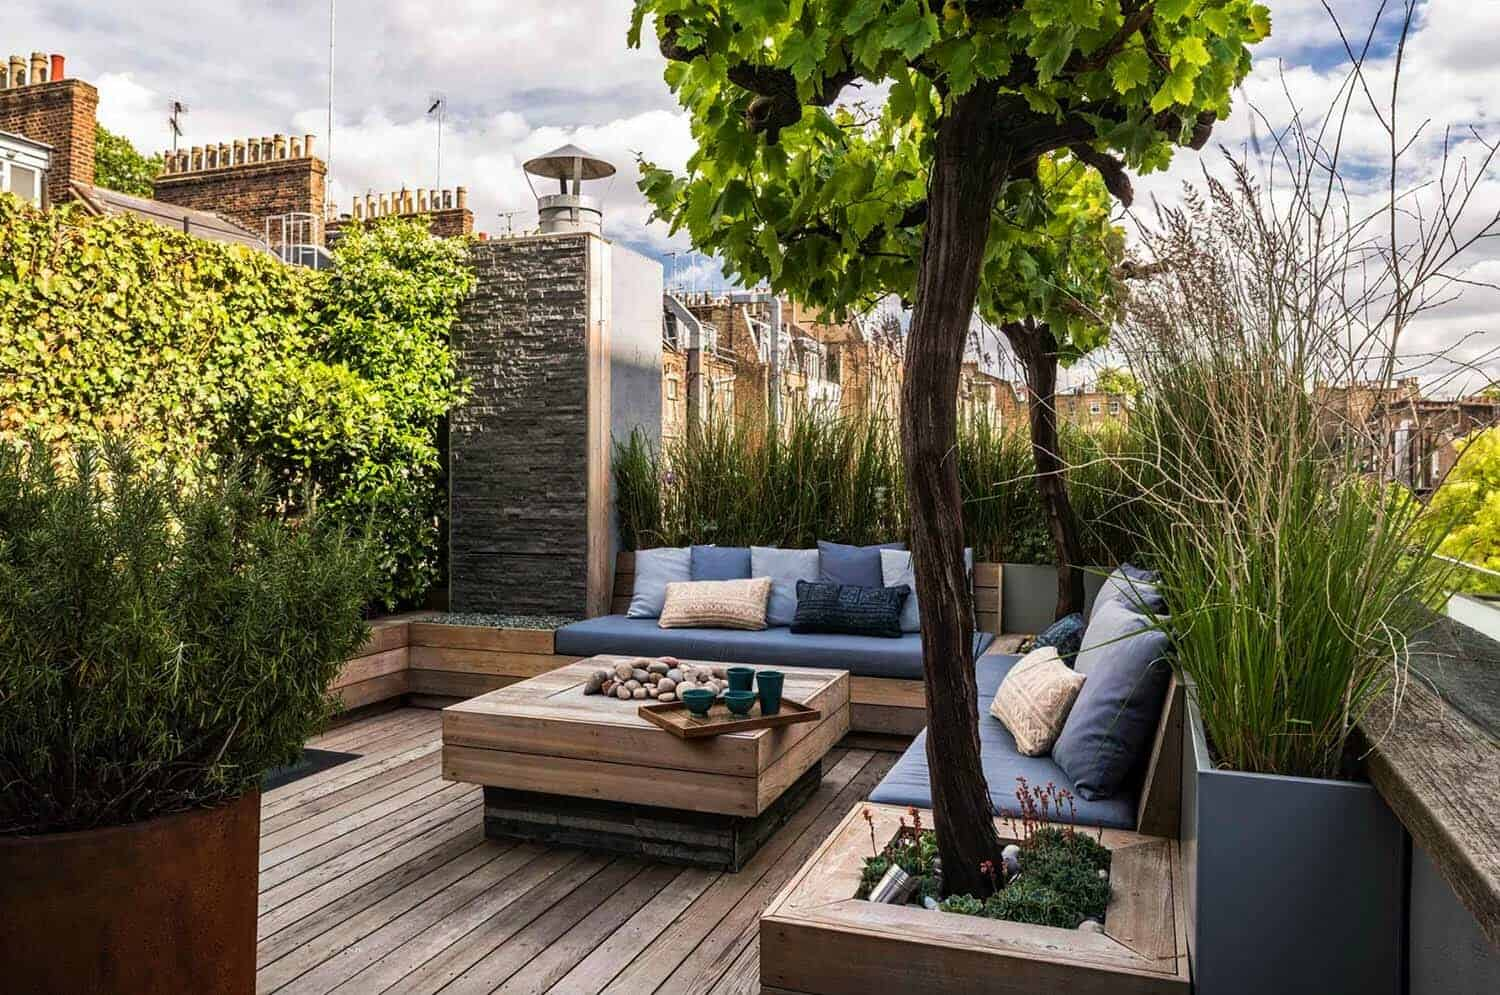 20 Brilliant and inspiring rooftop terrace design ideas